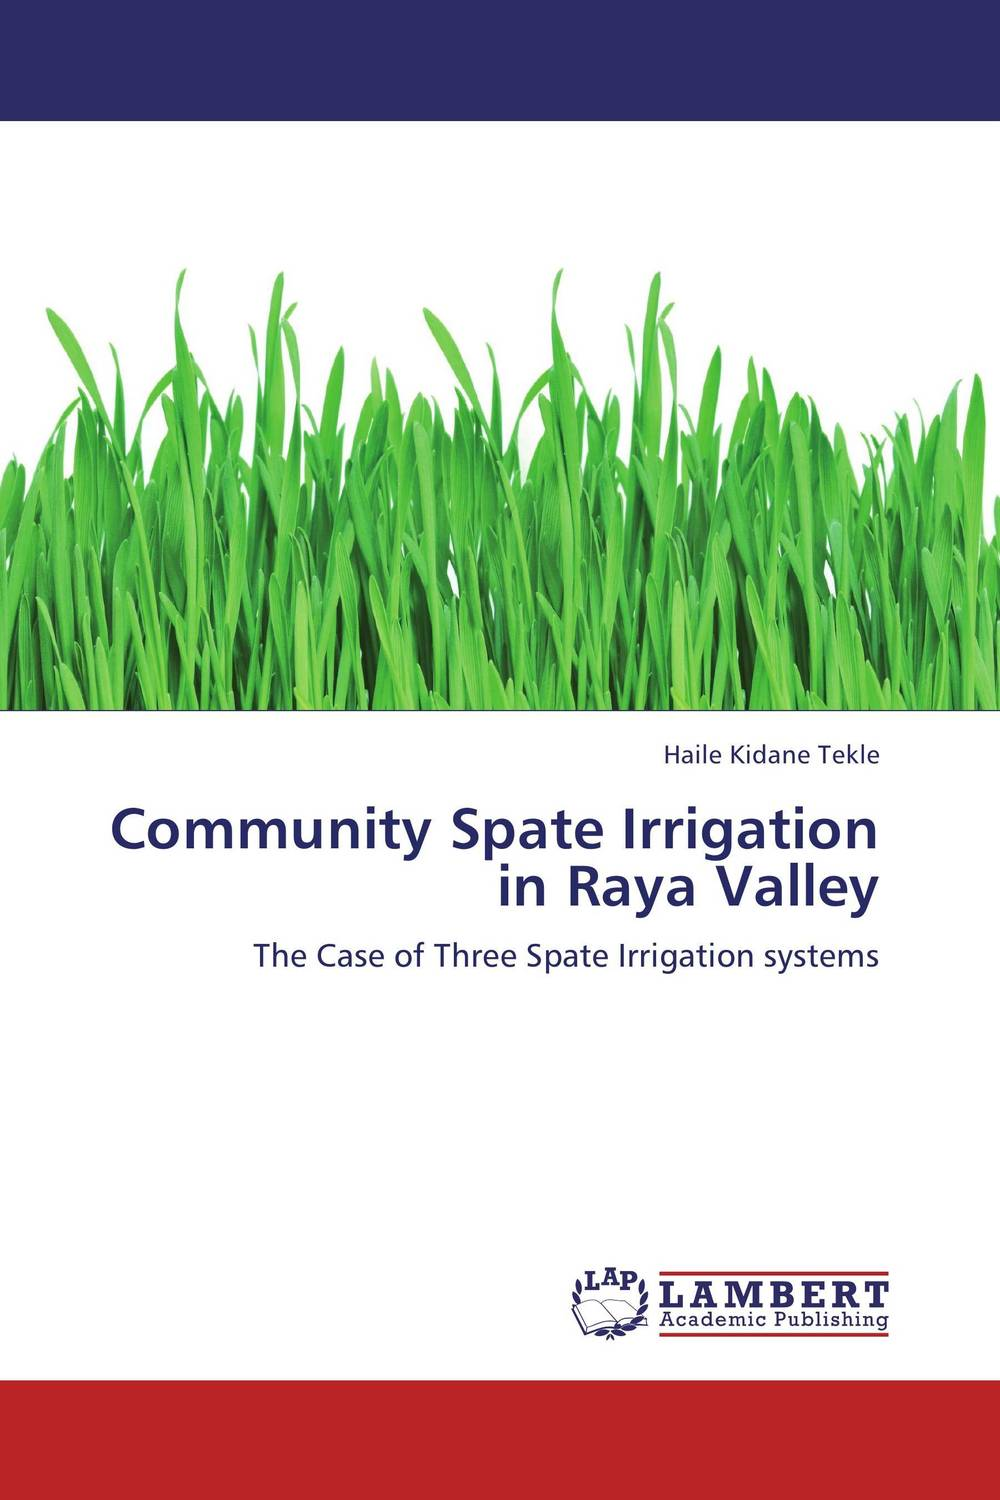 Community Spate Irrigation in Raya Valley community spate irrigation in raya valley